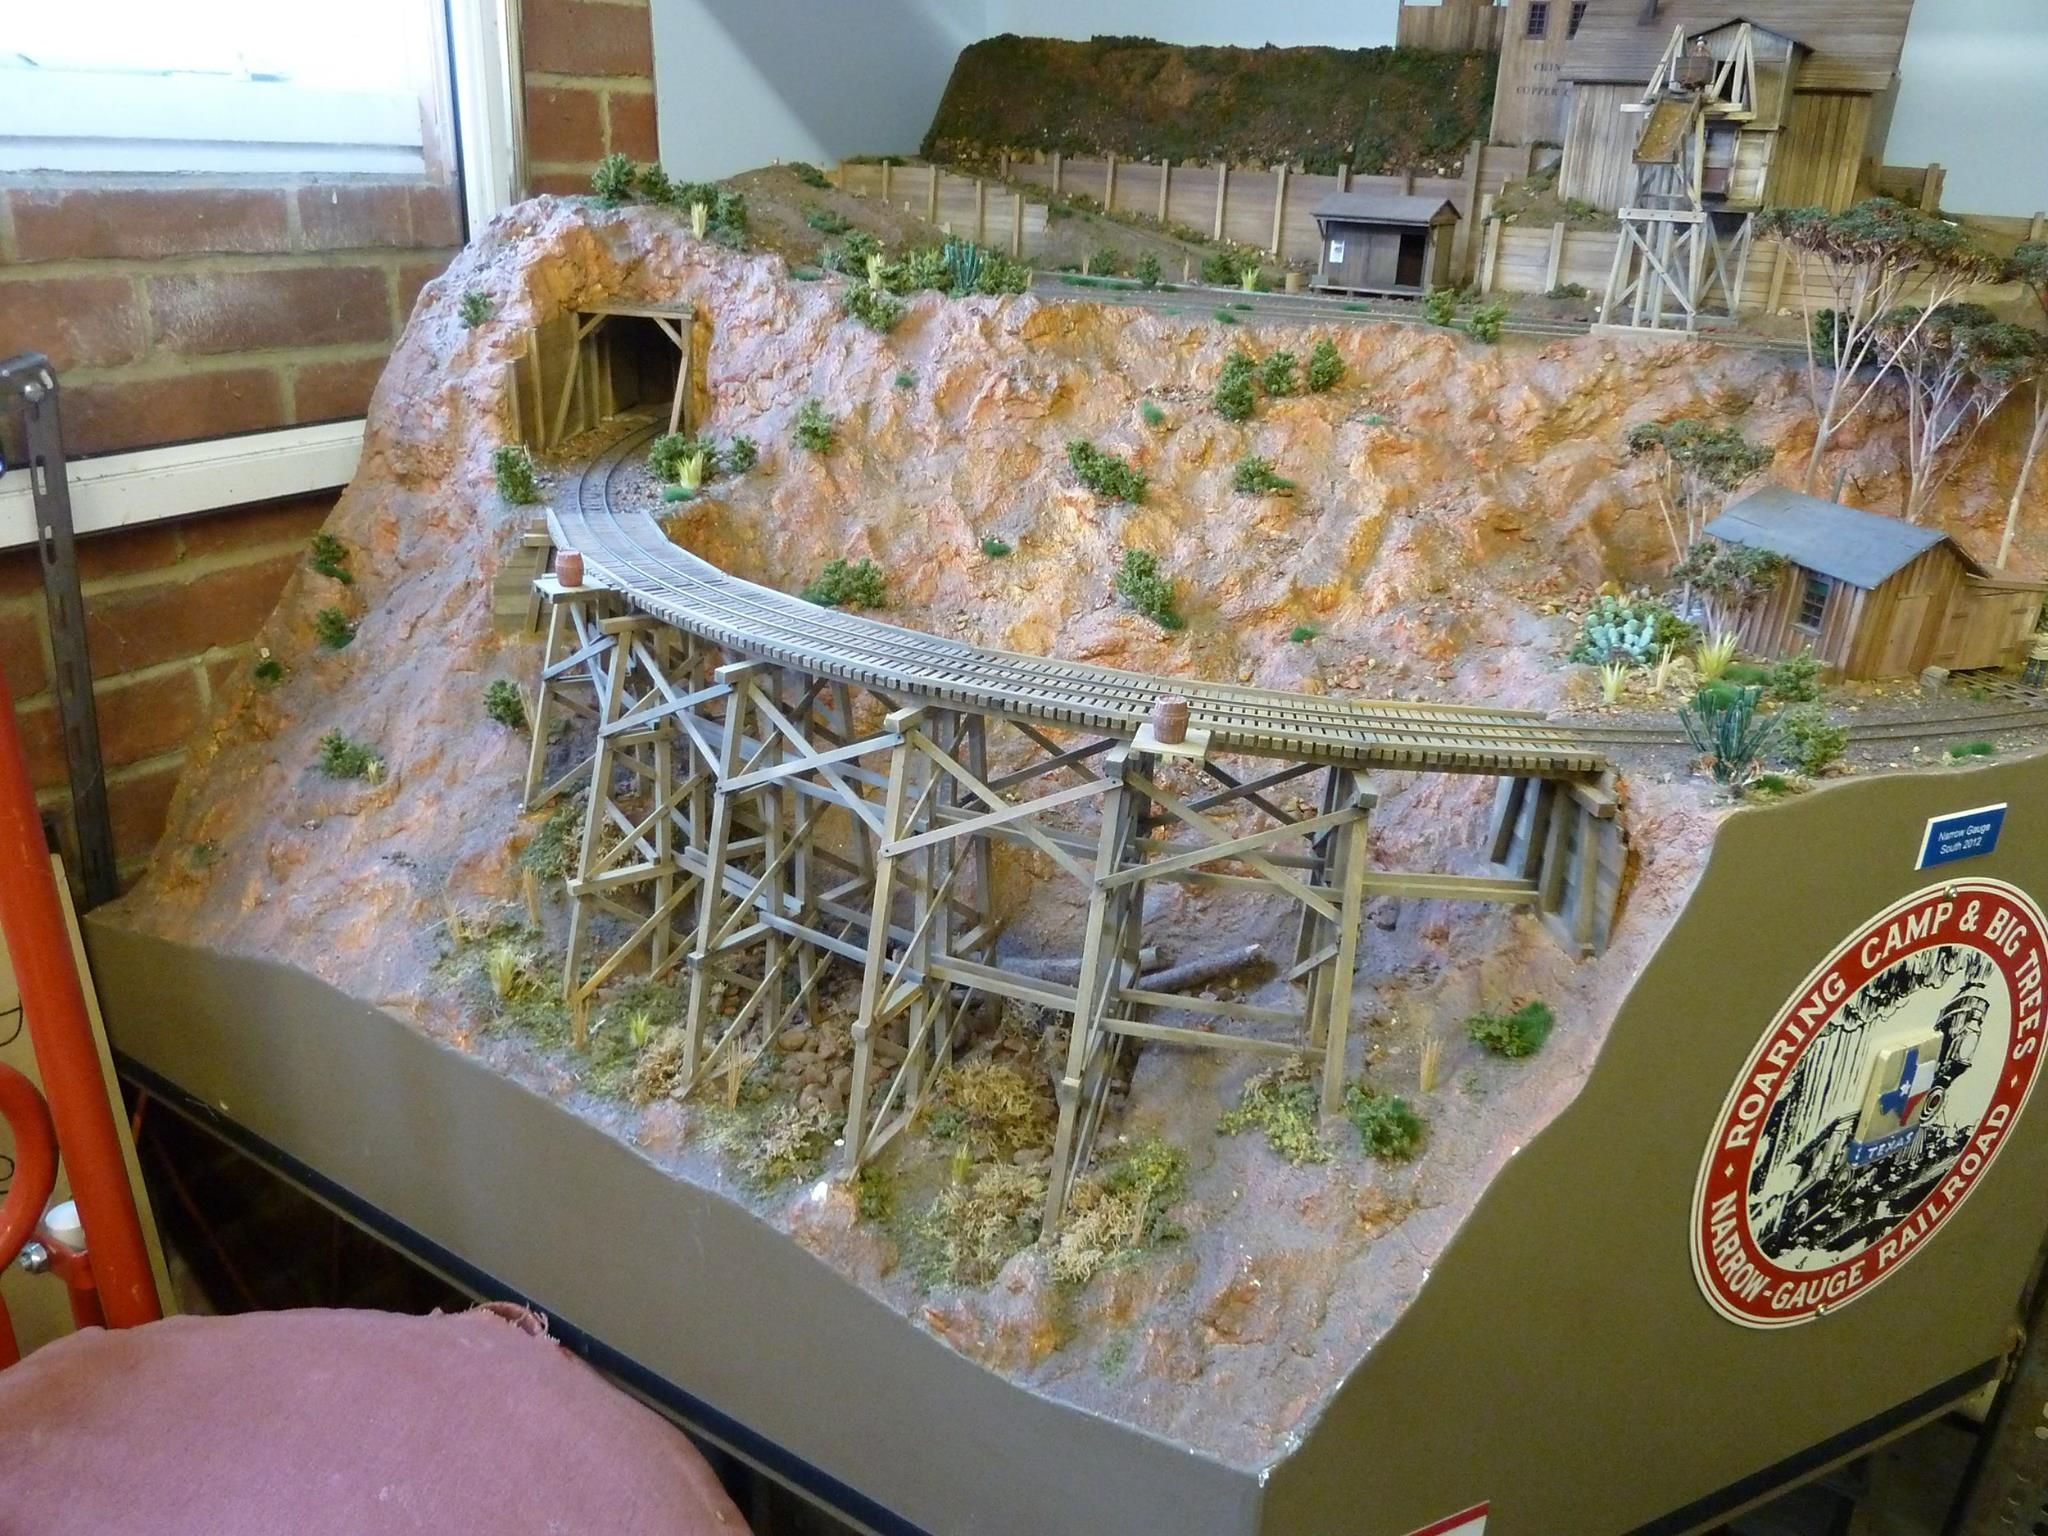 Awesome stretch of functional scenery  Nice little diorama